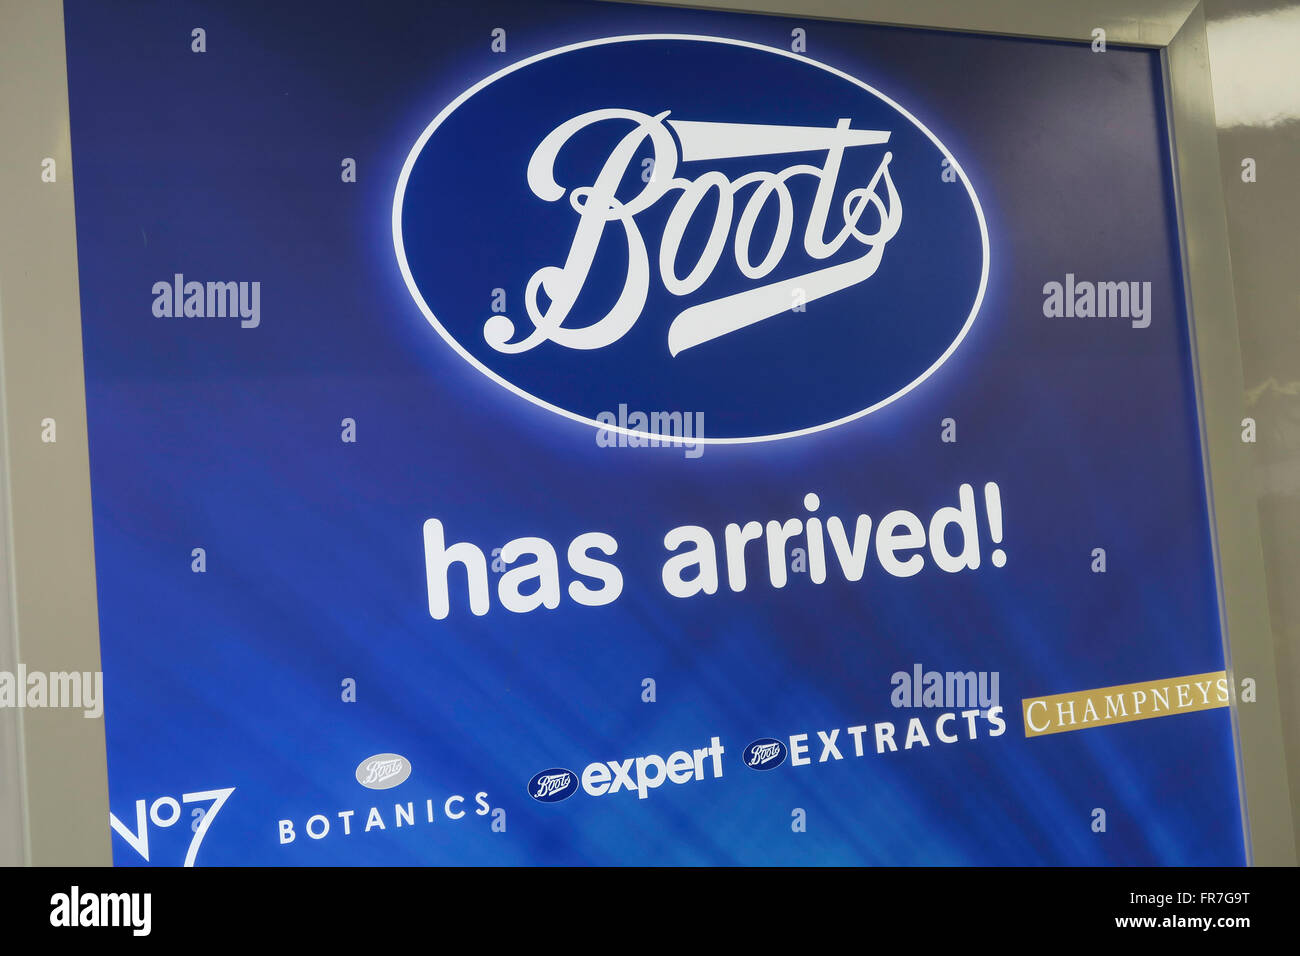 outlet sports shoes best Boots Pharmacy Display, Duane Reade by Walgreens Drugstore ...